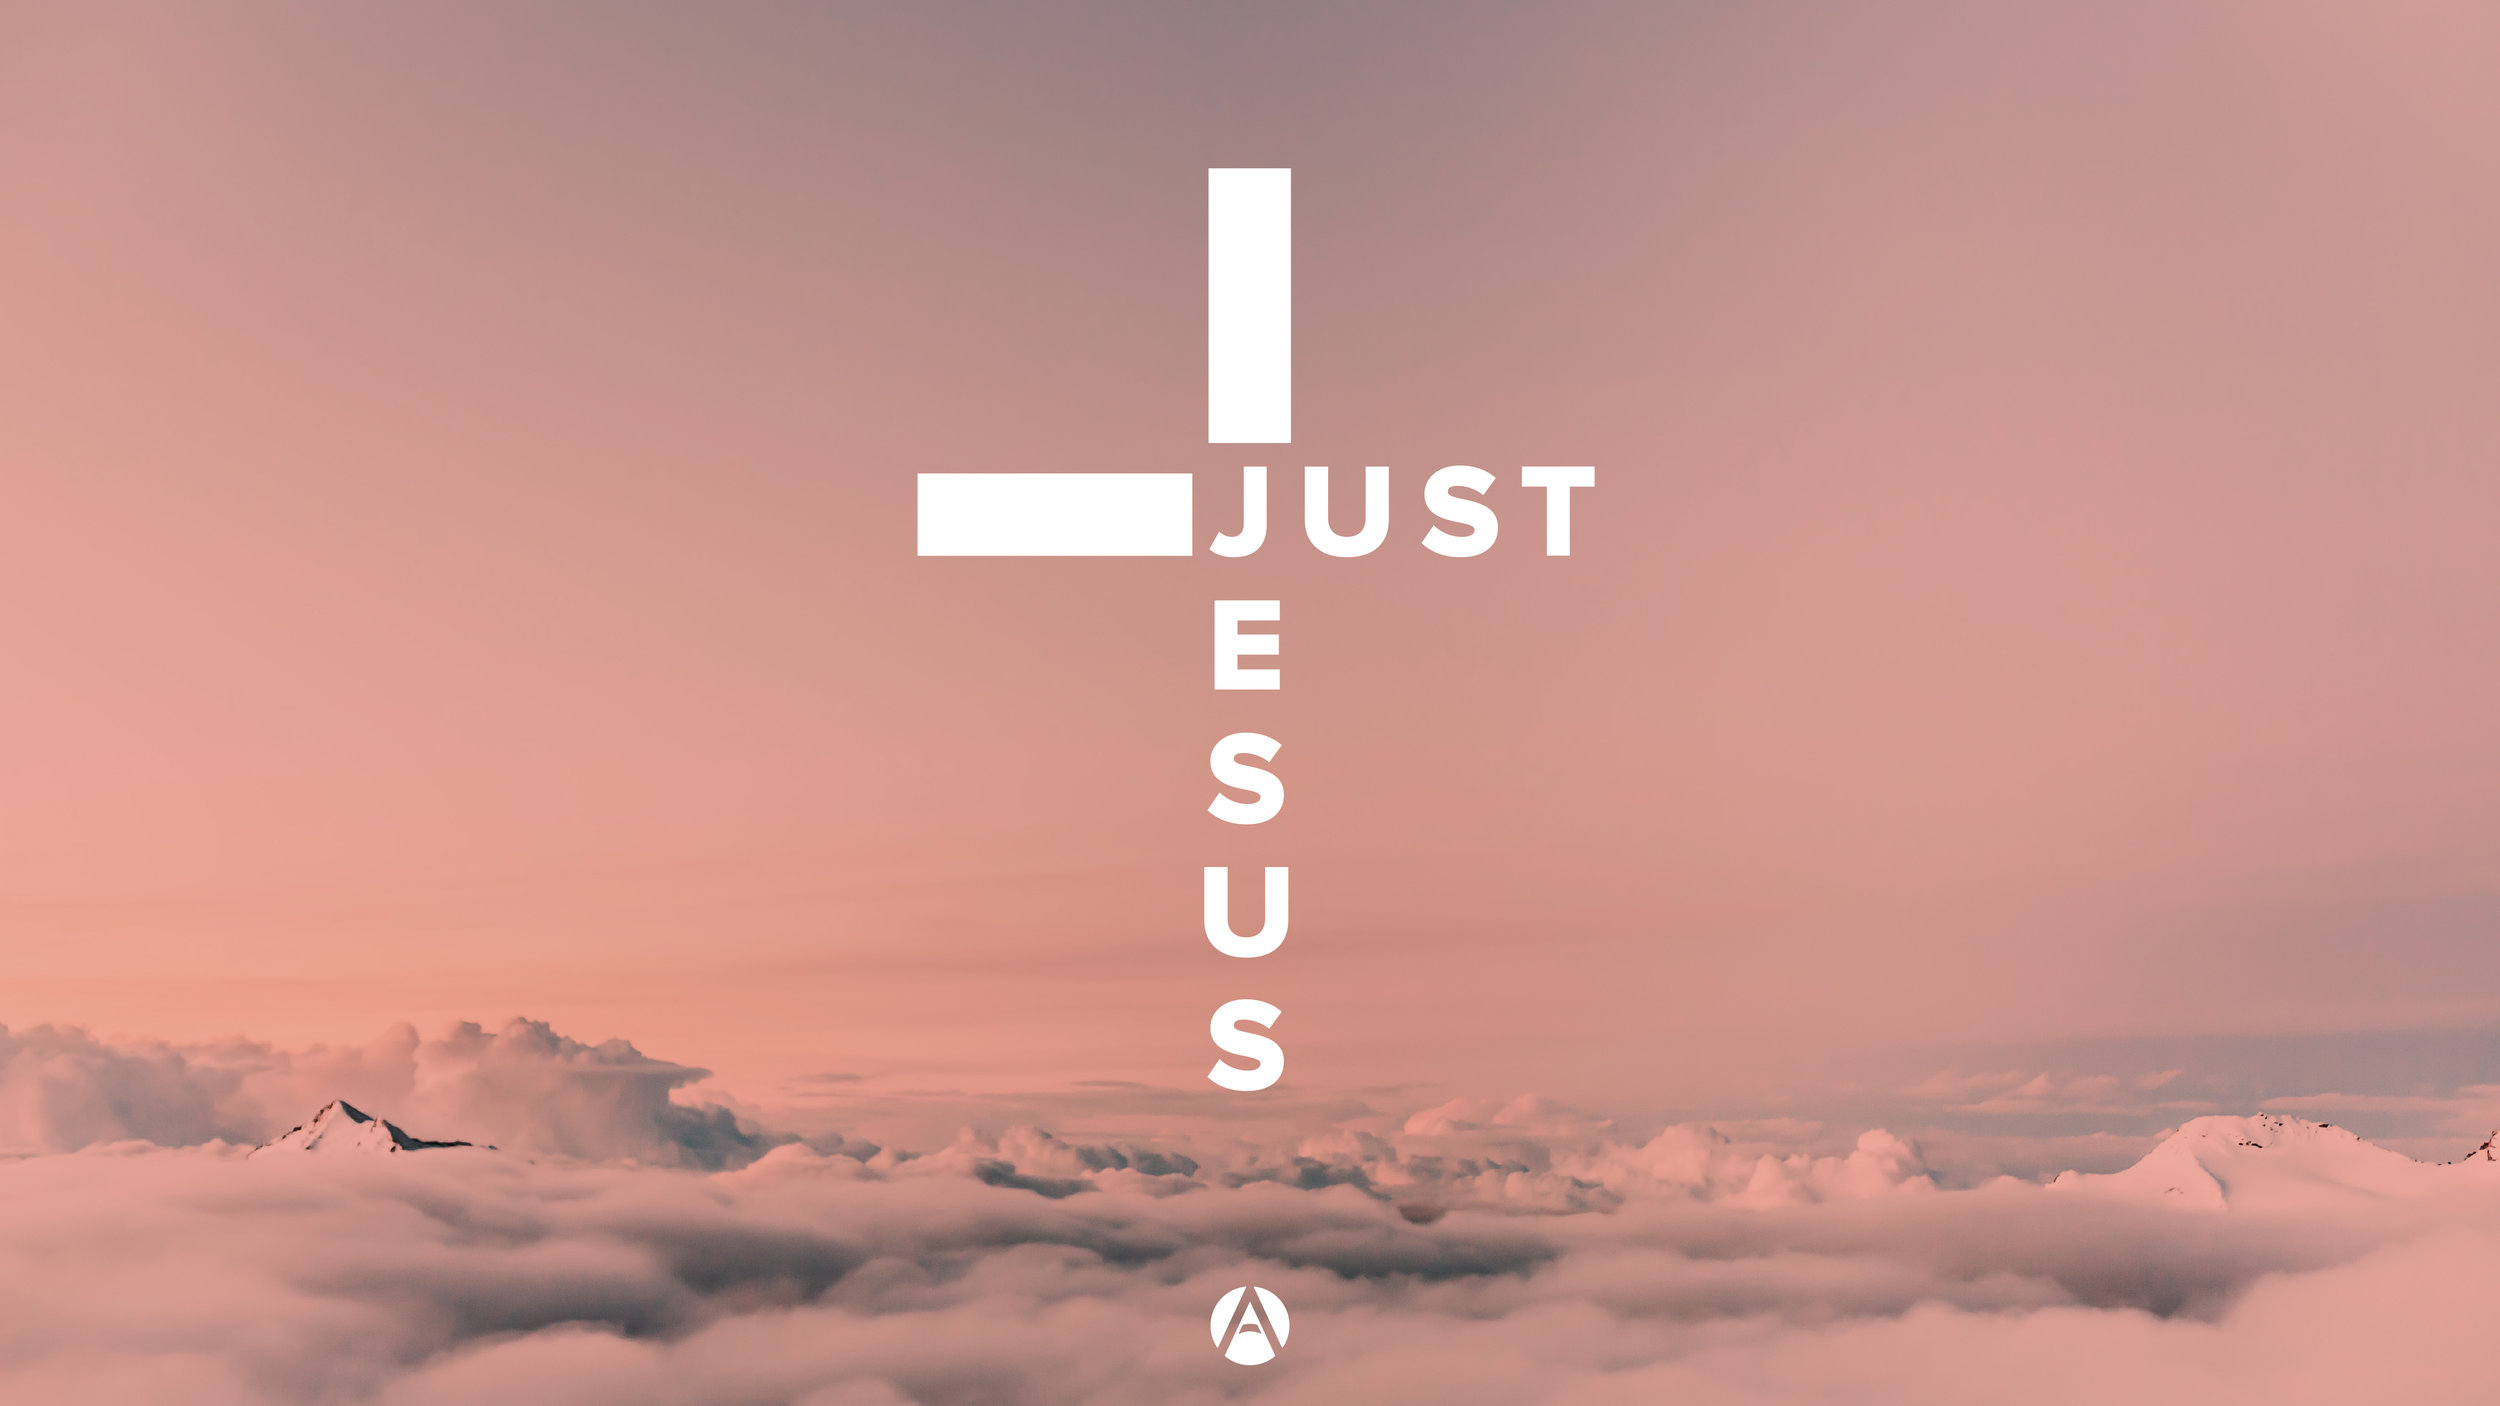 Just Jesus - In the book of Galatians, Paul writes to a people who need to remember that nothing can be added to the finished work of the cross. The gospel is Just. Jesus.